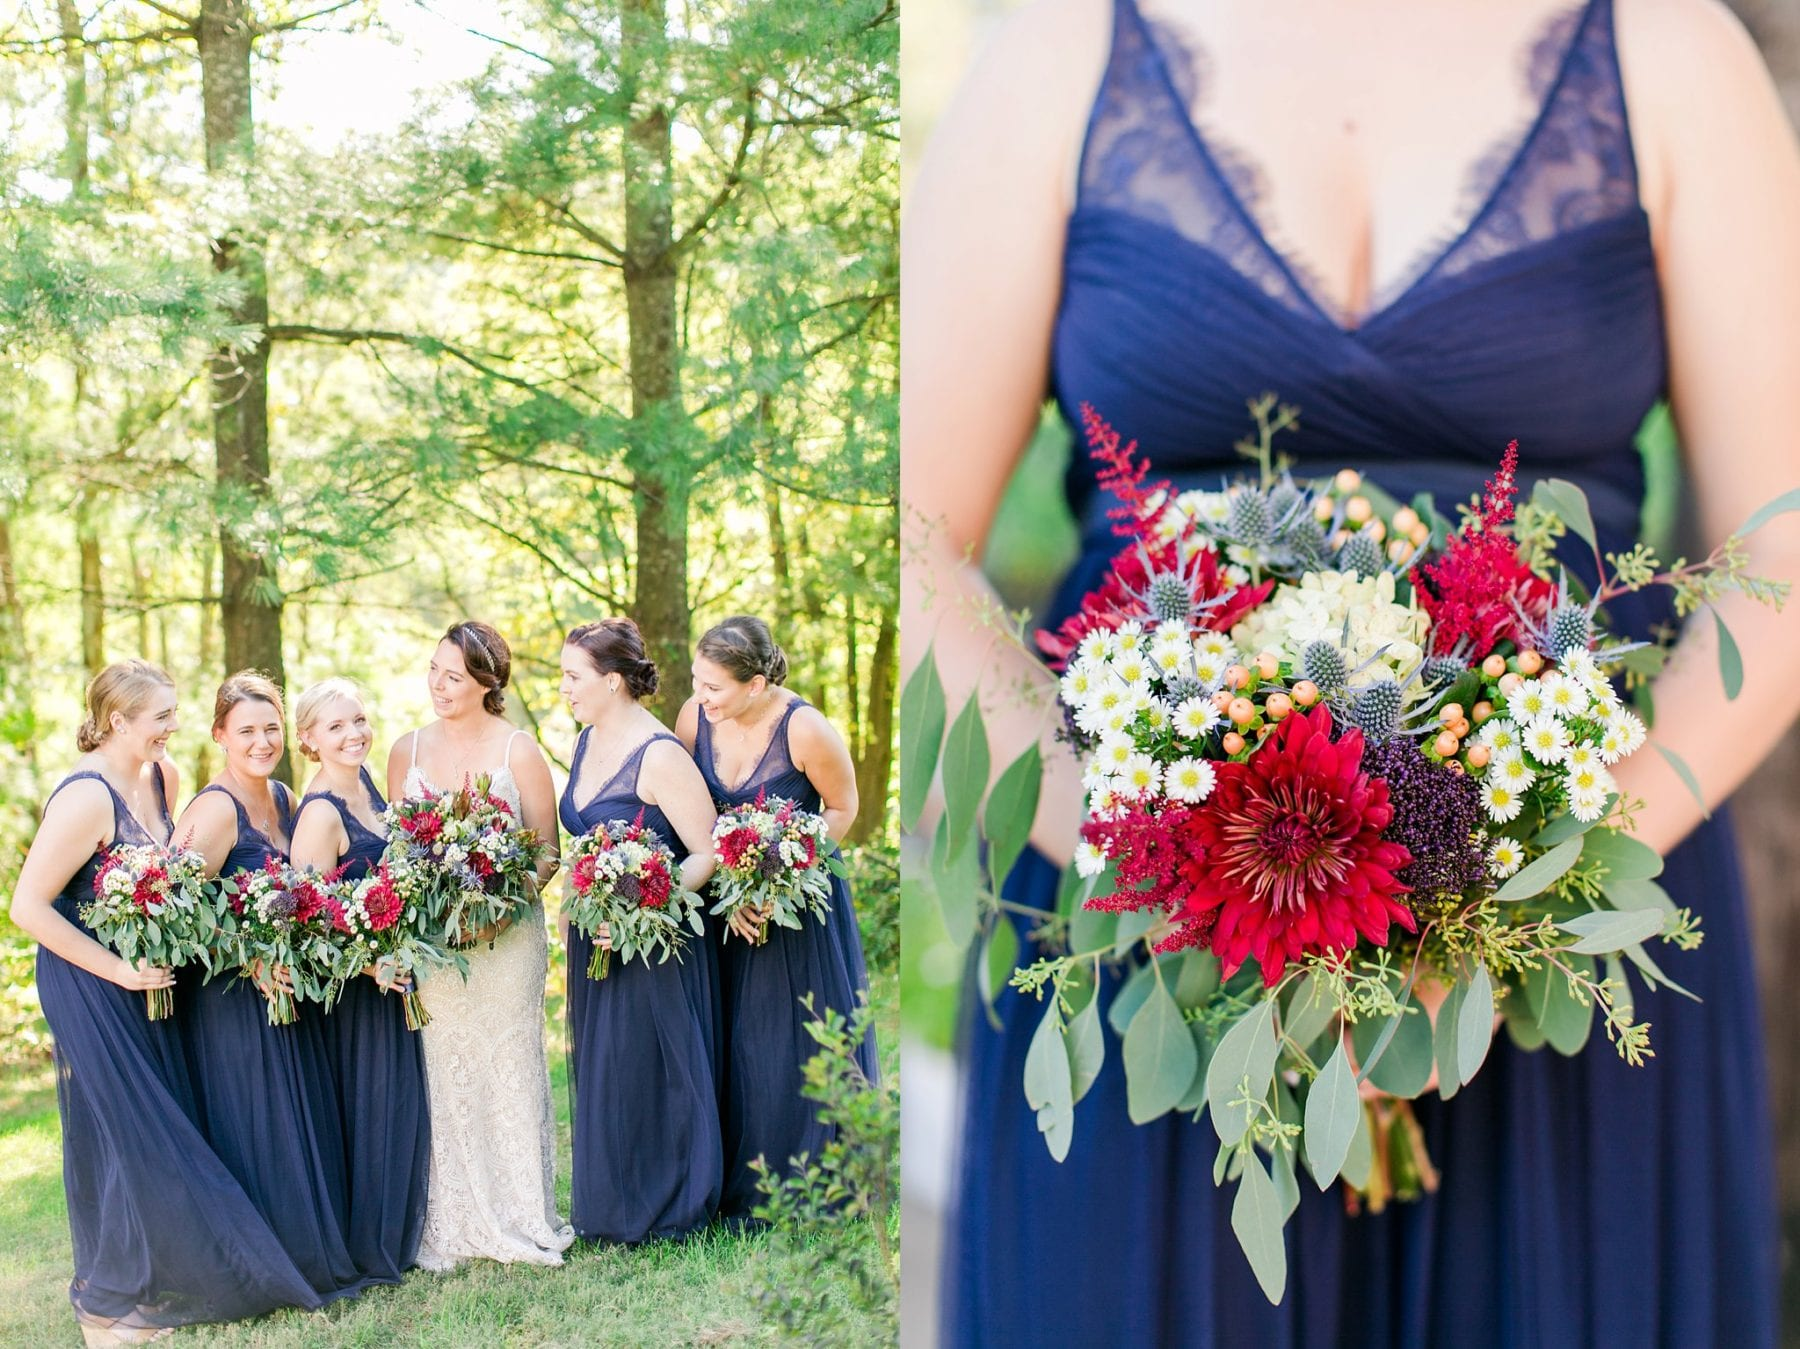 Tranquility Farm Wedding Photos Leesburg Wedding Photographer Megan Kelsey Photography Virginia Wedding Photographer Matt & Colleen-102.jpg